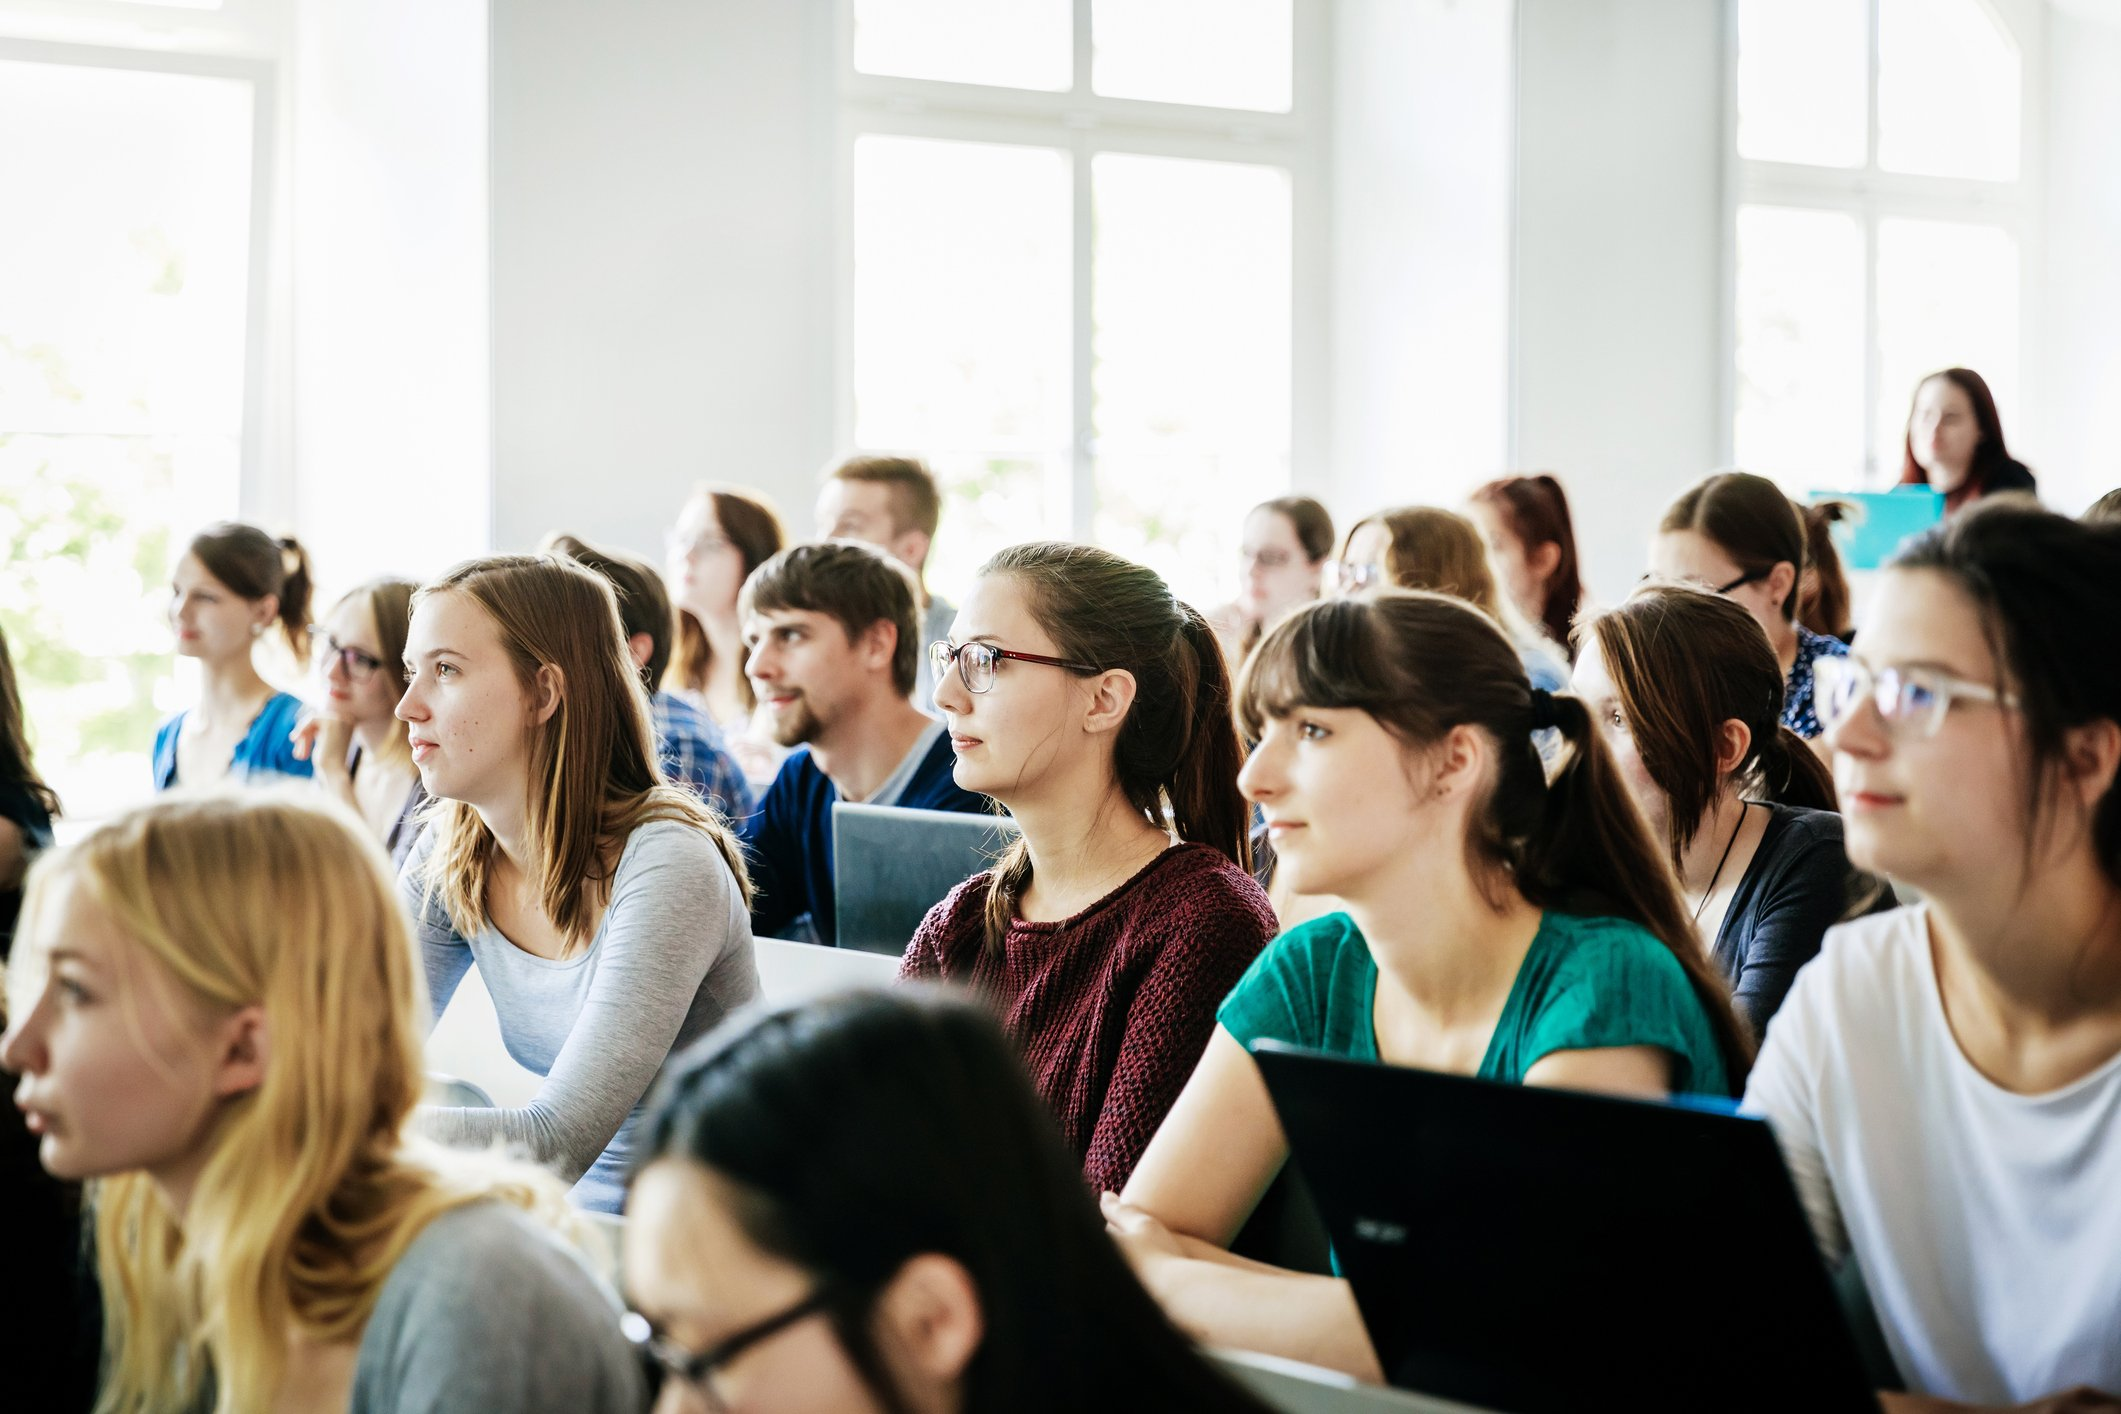 A group of students listening and concentrating on their tutor during a lecture at university.   Photo: Getty Images